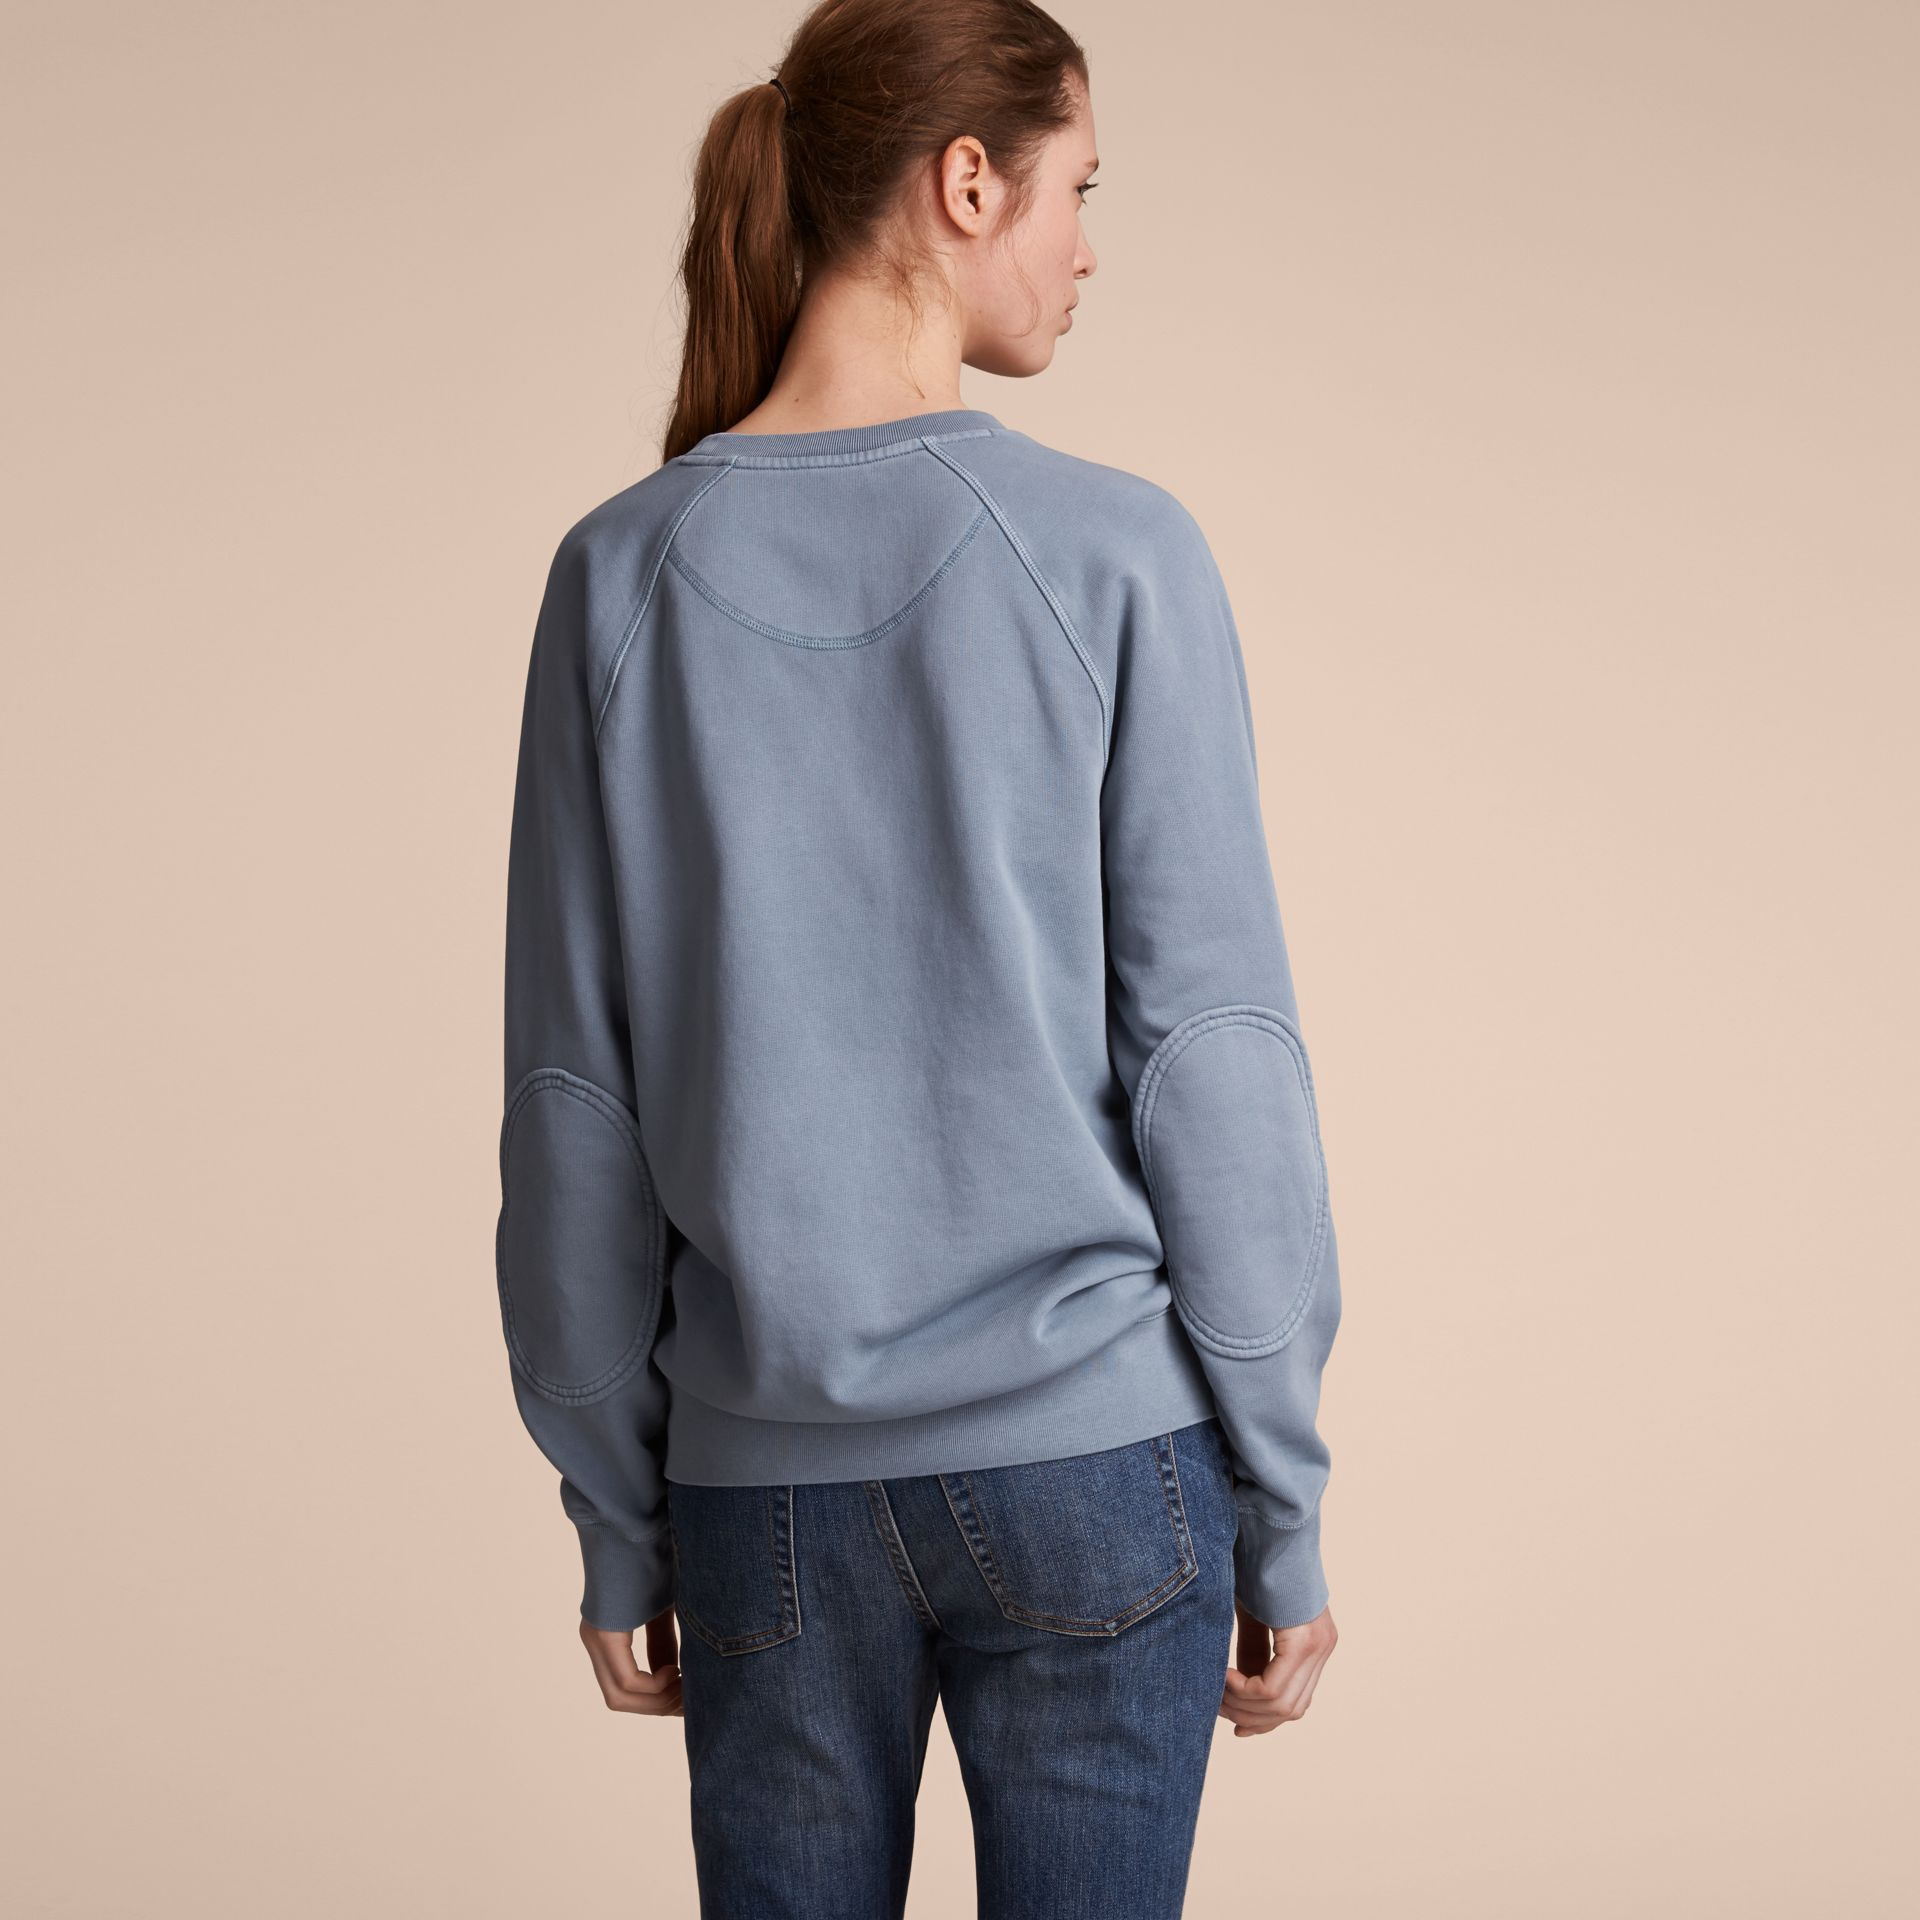 Unisex Pigment-dyed Cotton Oversize Sweatshirt in Dusty Blue - Women | Burberry - gallery image 6